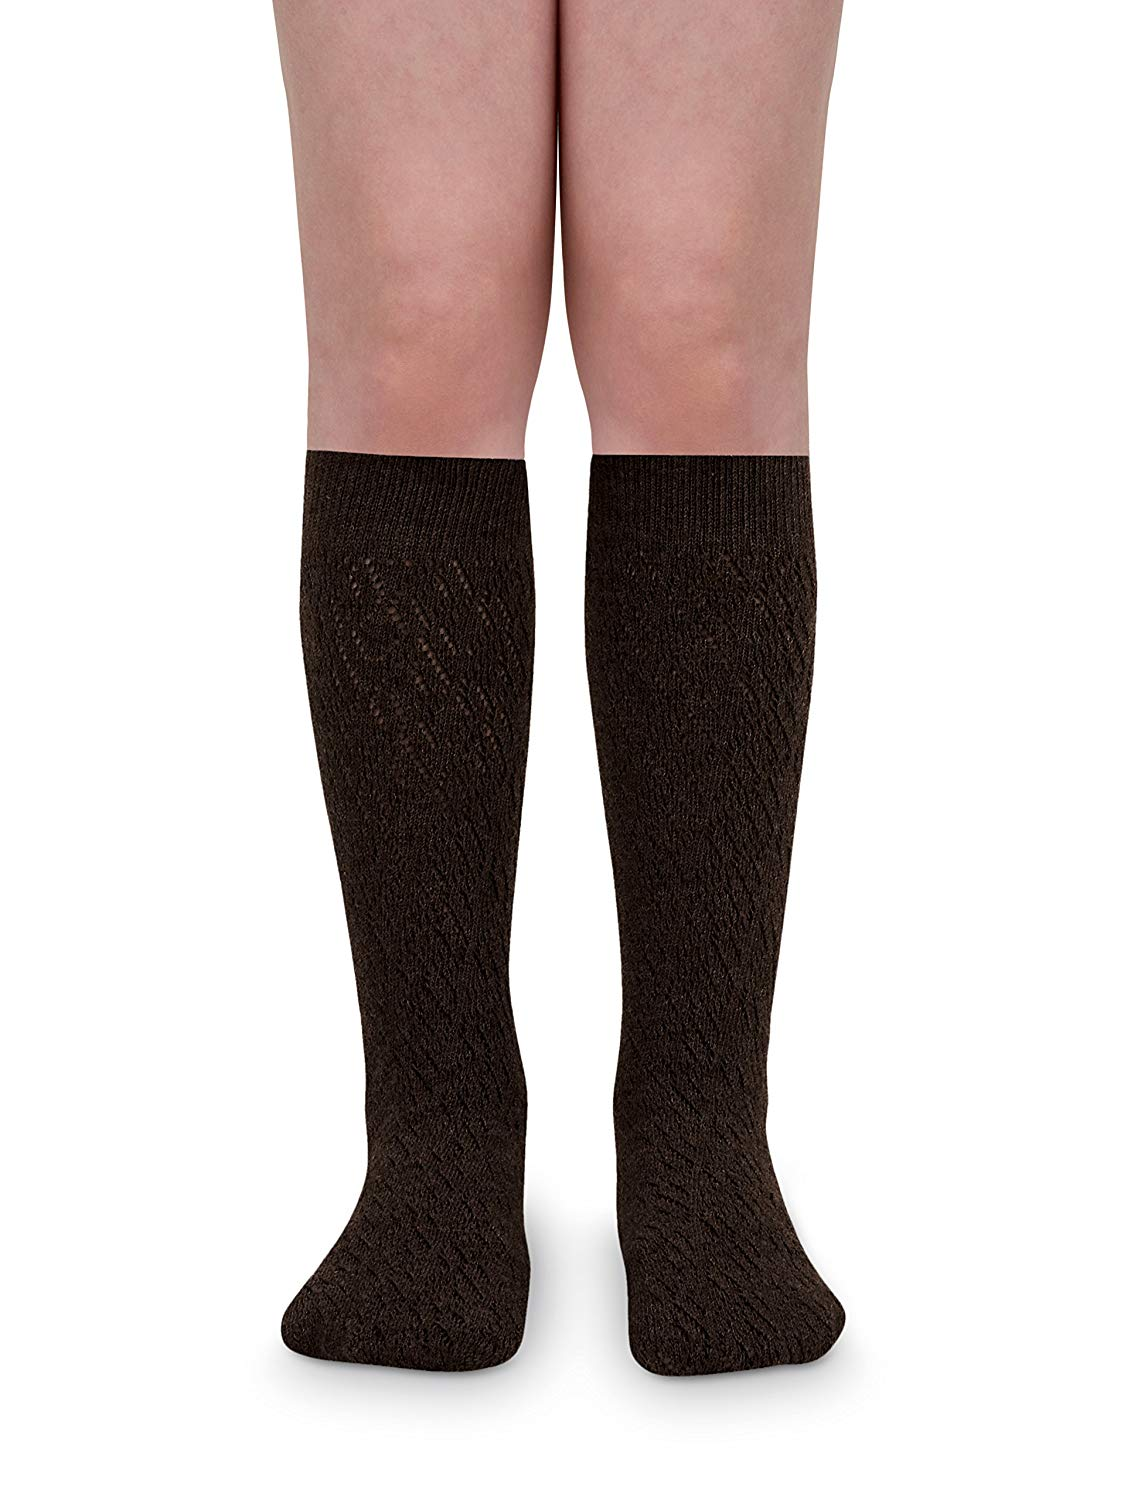 163e9cd0db397 Get Quotations · Jefferies Socks Girls School Uniform Pointelle Design Knee  High Socks 2 Pair Pack